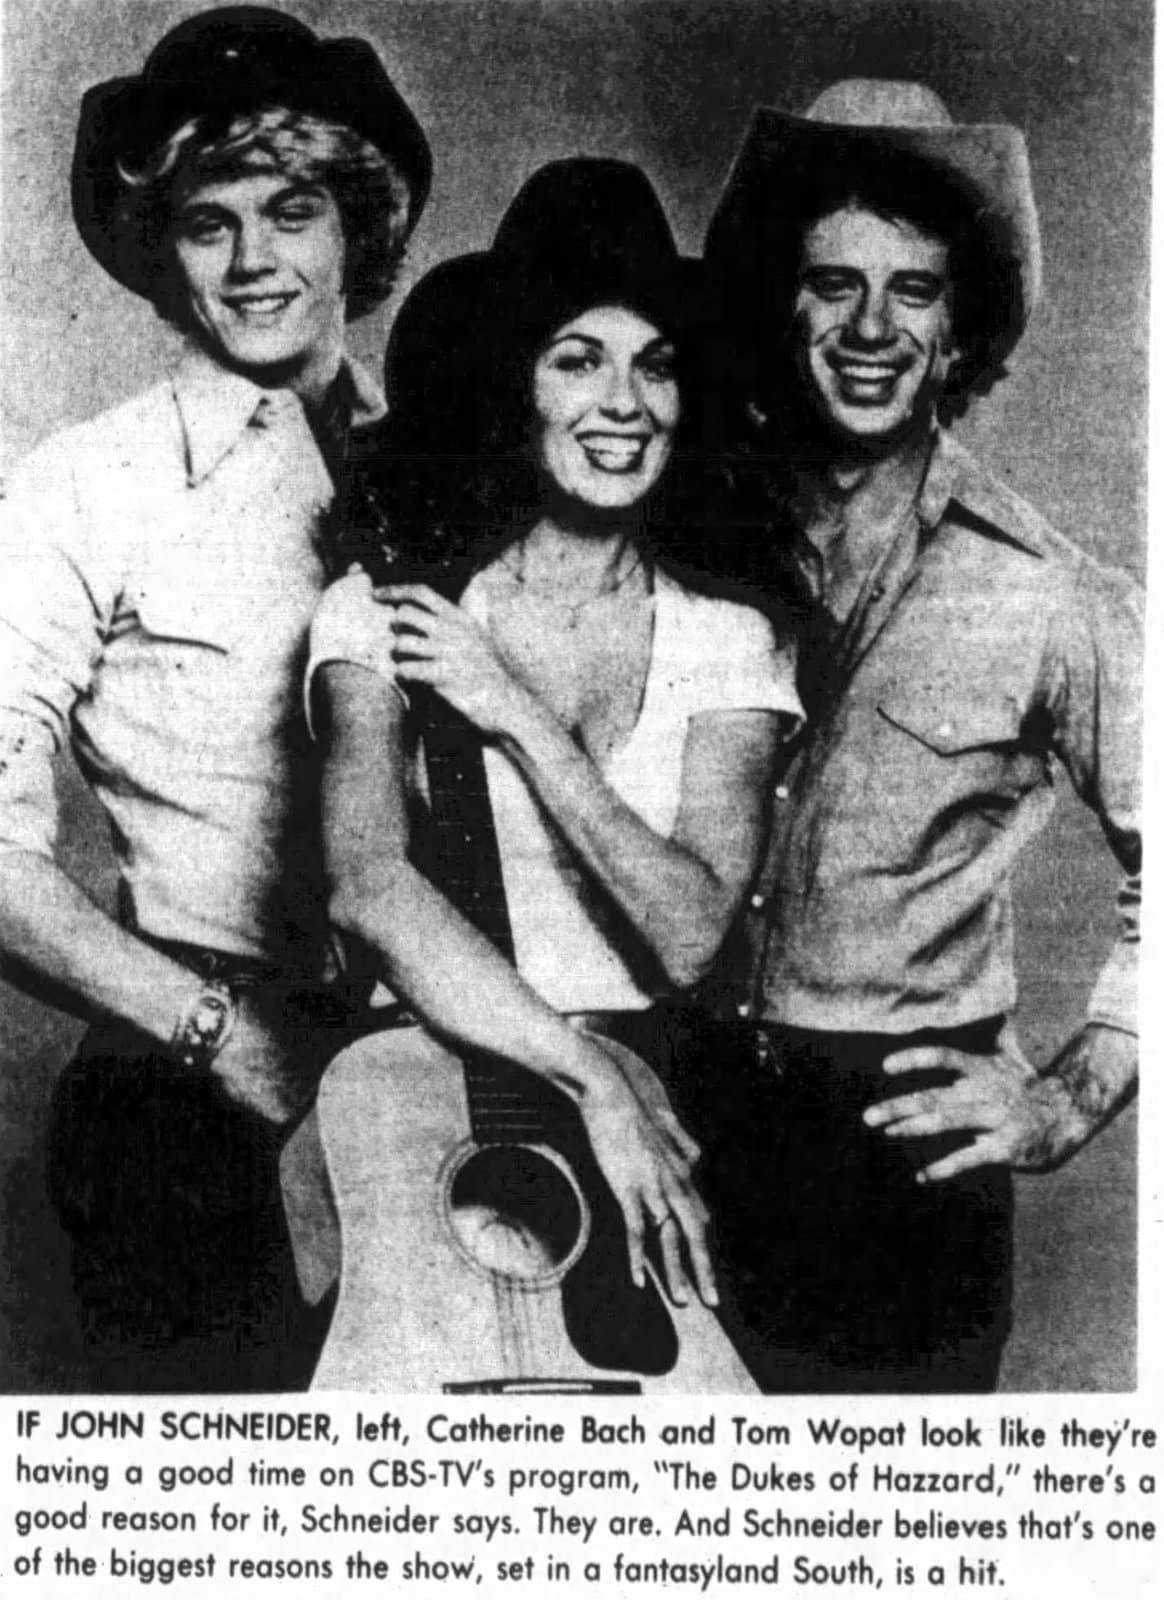 The Dukes of Hazzard leads (1980)